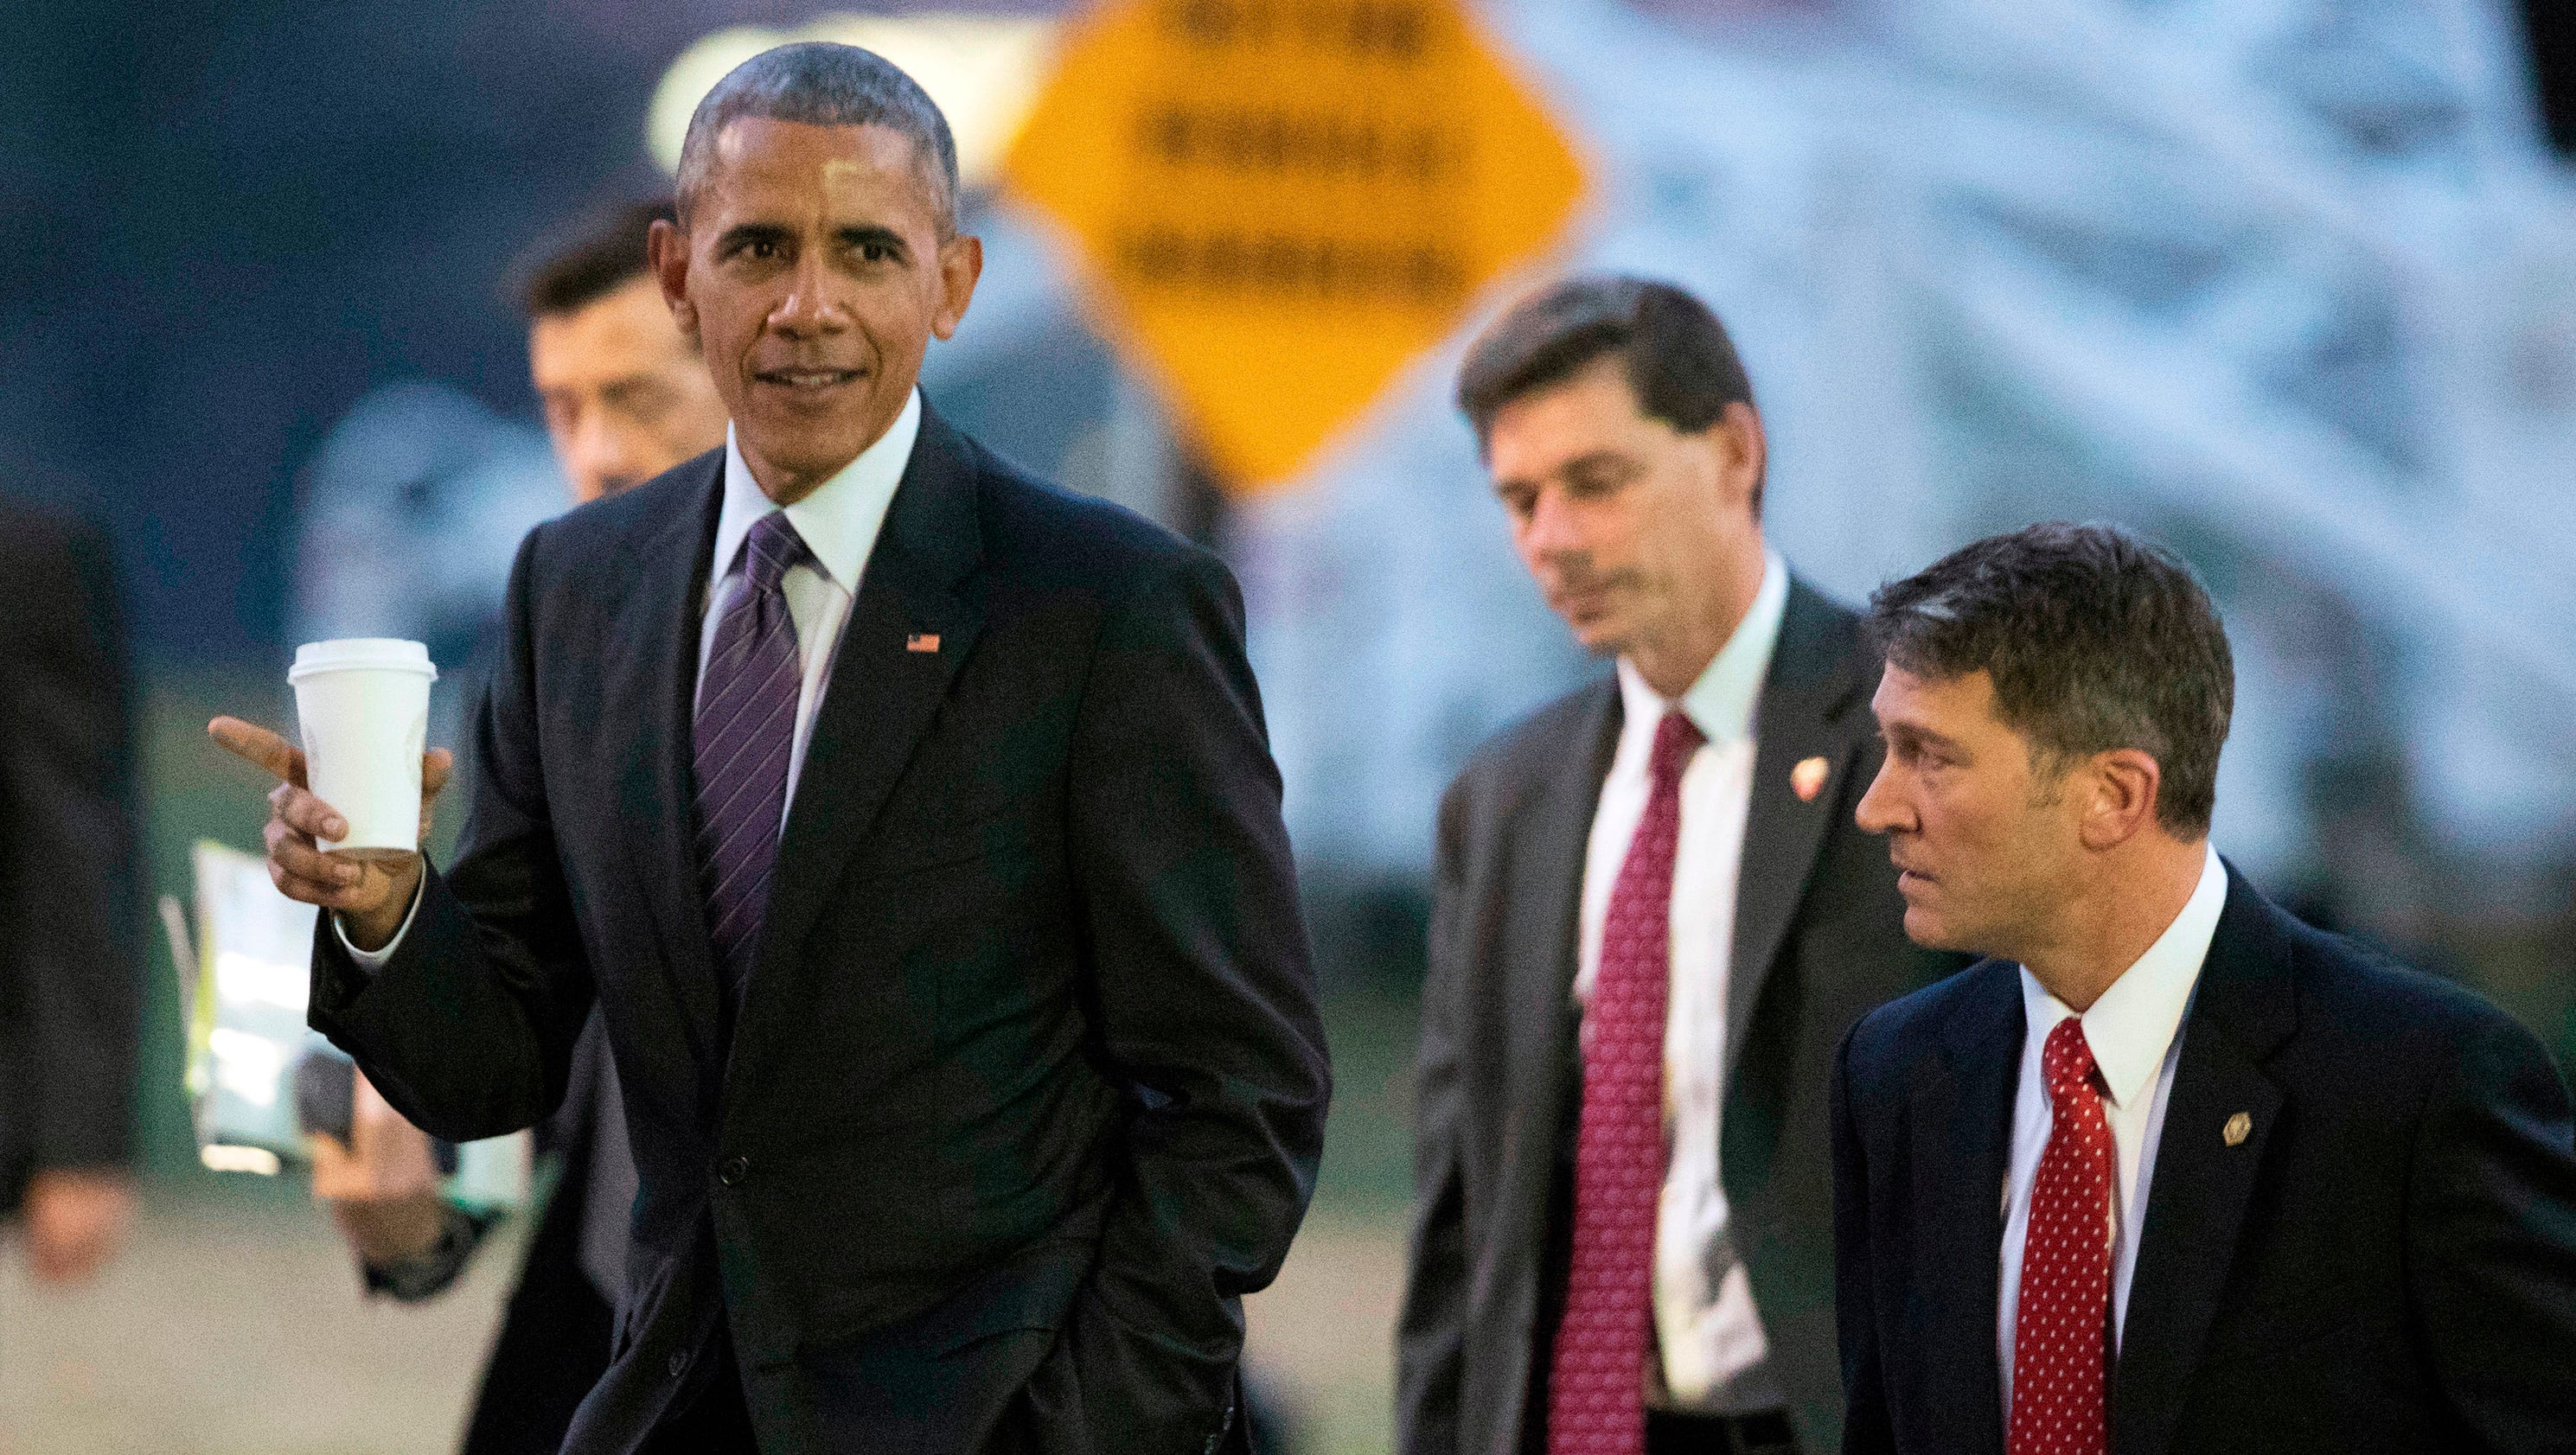 Immigration: Did the Obama administration separate families?